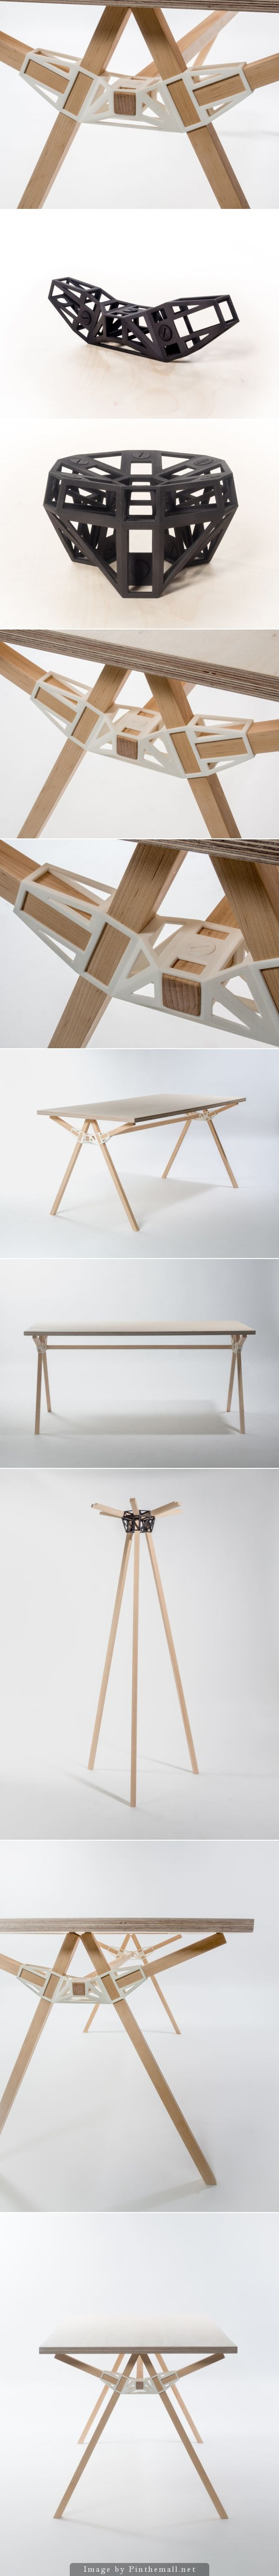 3d printed furniture components... - a grouped images picture - Pin Them All